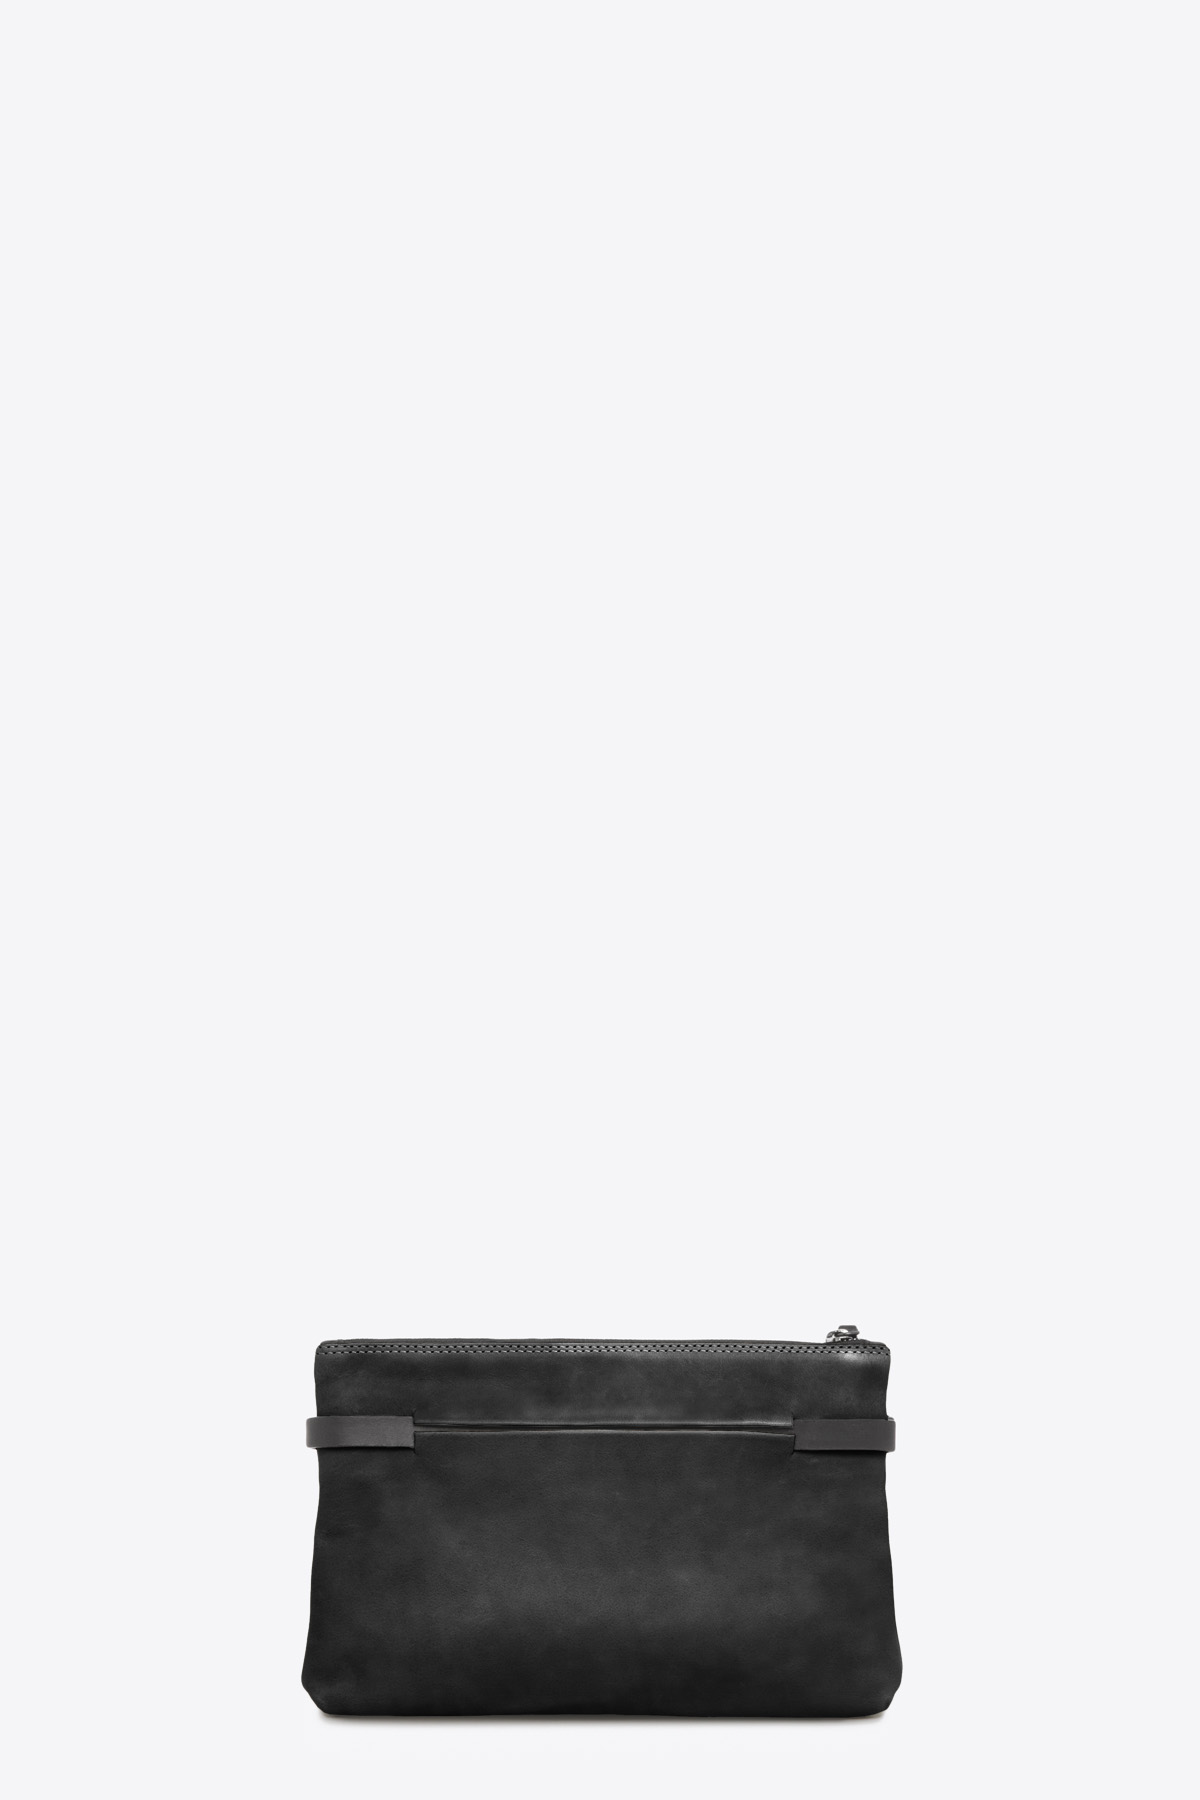 dclr004s-tapeclutch-a1-black-back